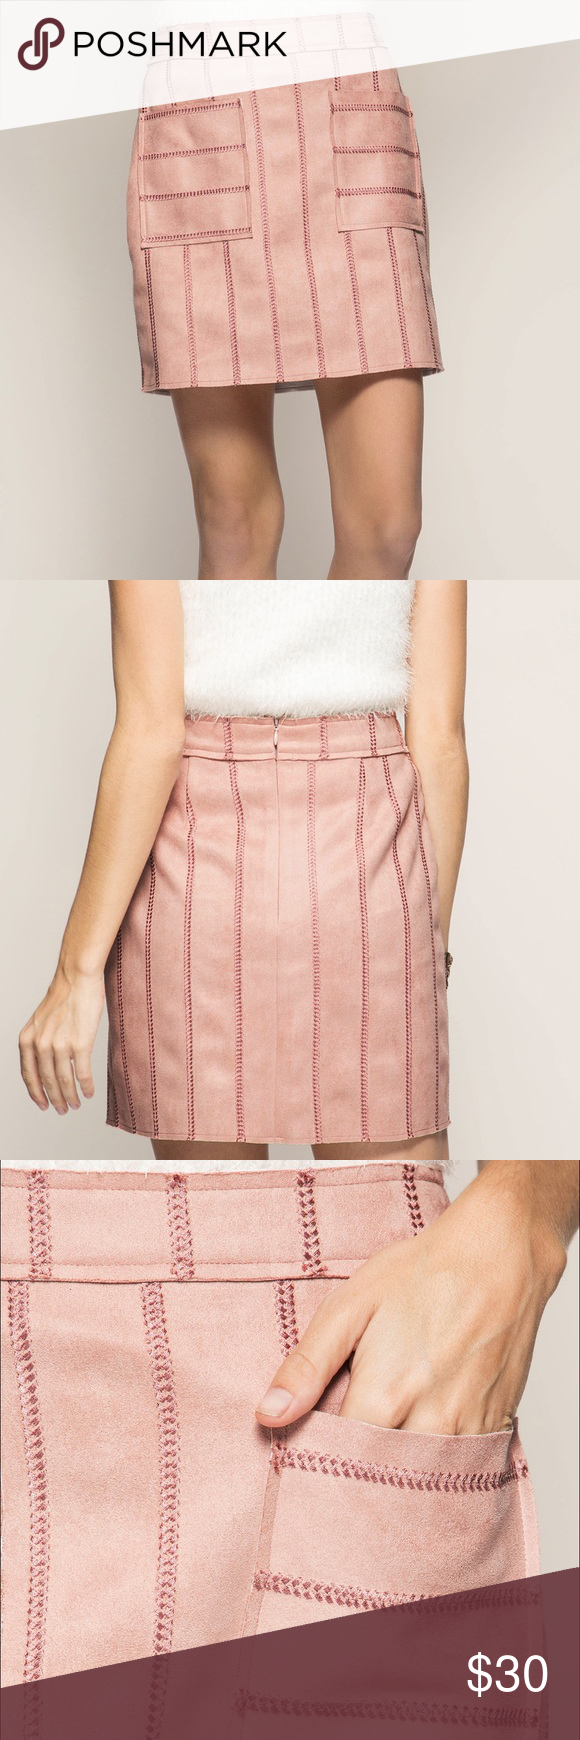 Faux suede mink skirt with front pocket Faux suede mink skirt with front pocket Skirts Mini